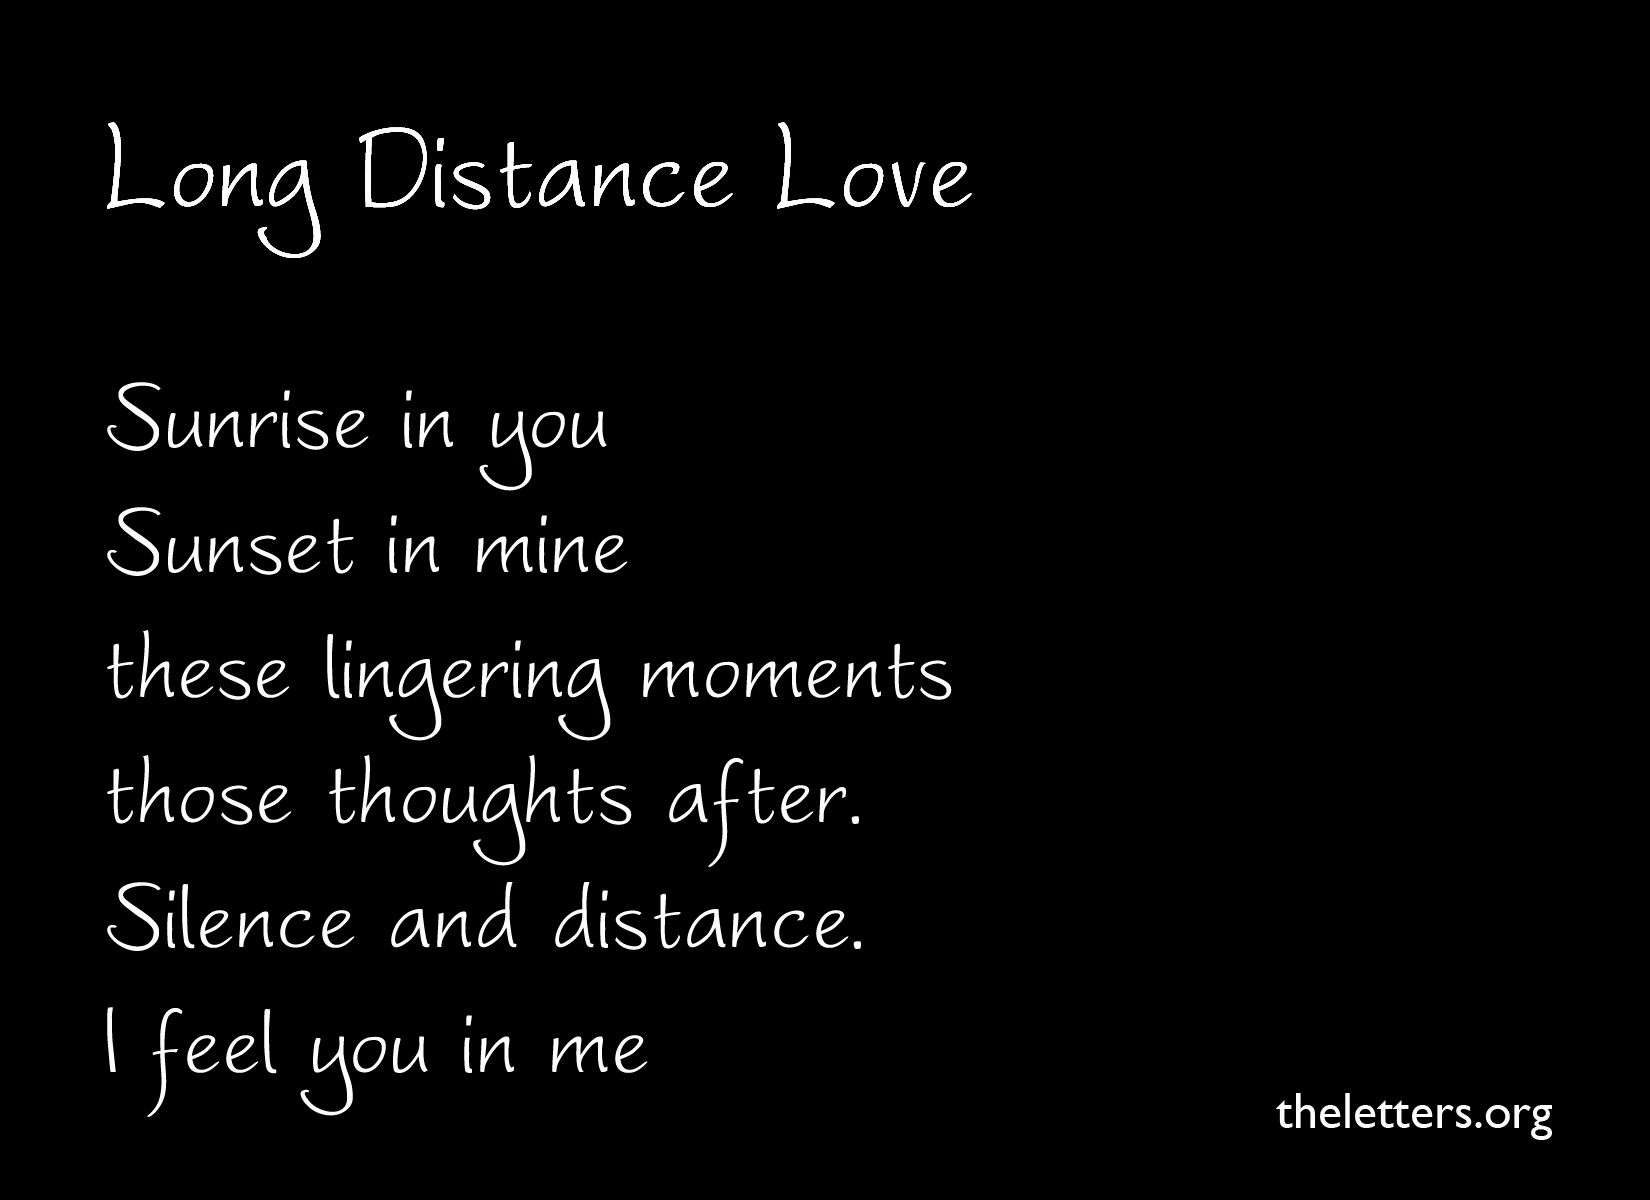 long distance relationship tumblr challenge Google